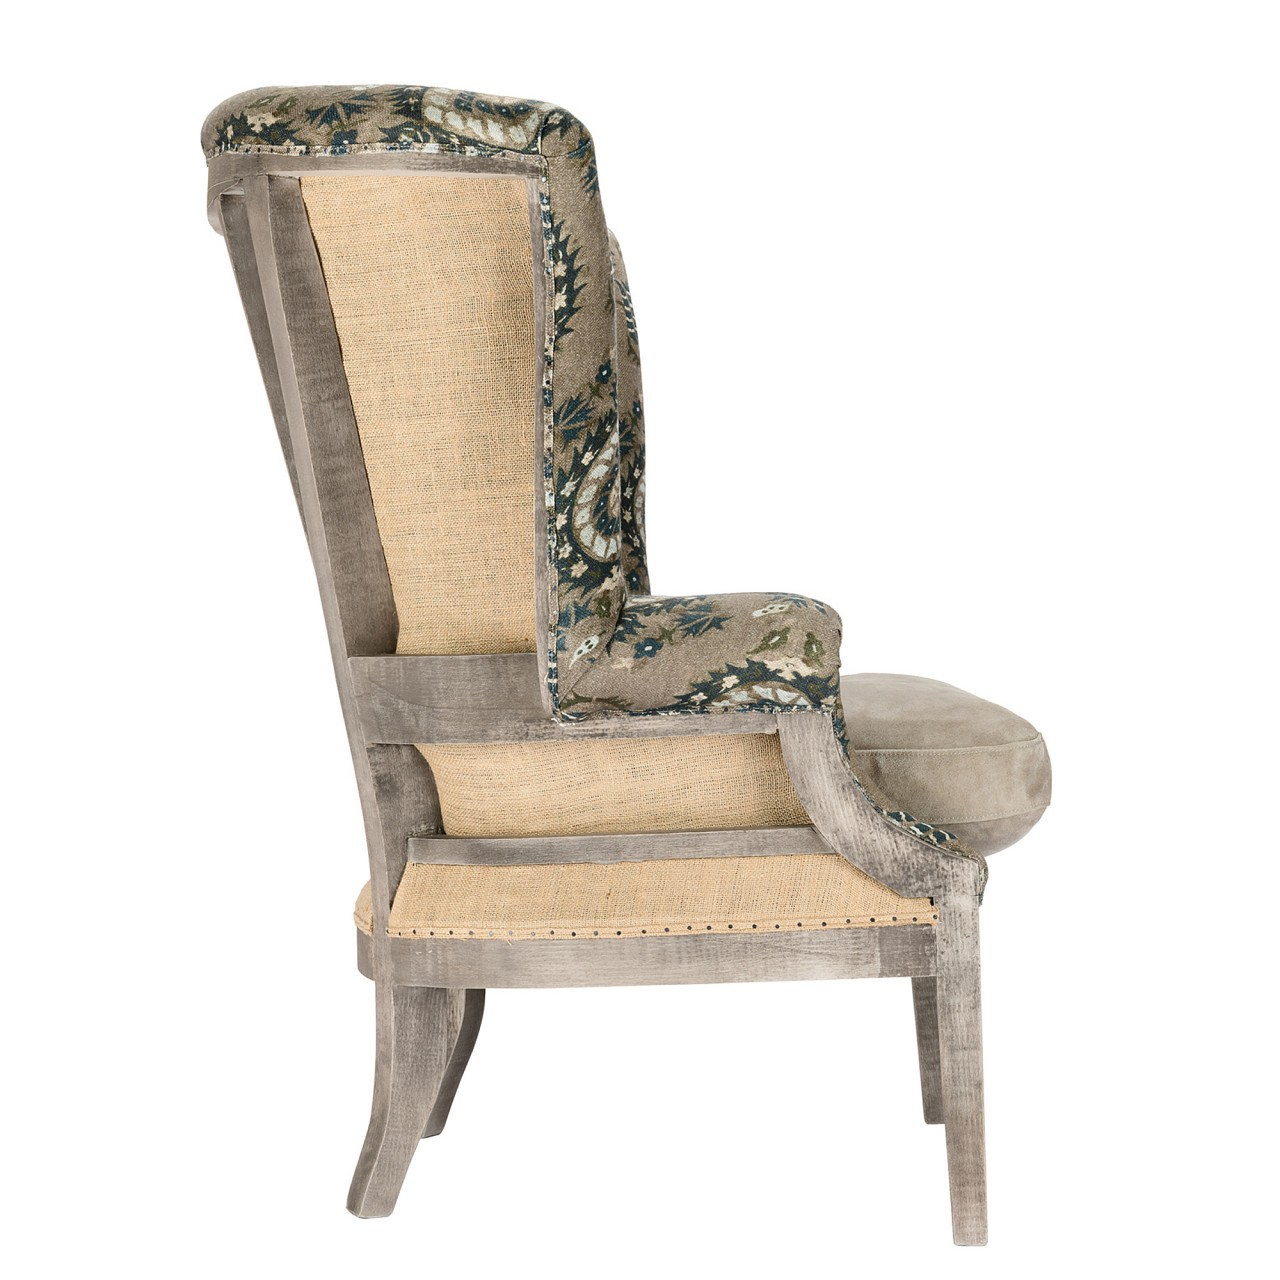 WILLIAM DECONSTRUCTED WING CHAIR - FLOURISH DAPPLE GREY Linen